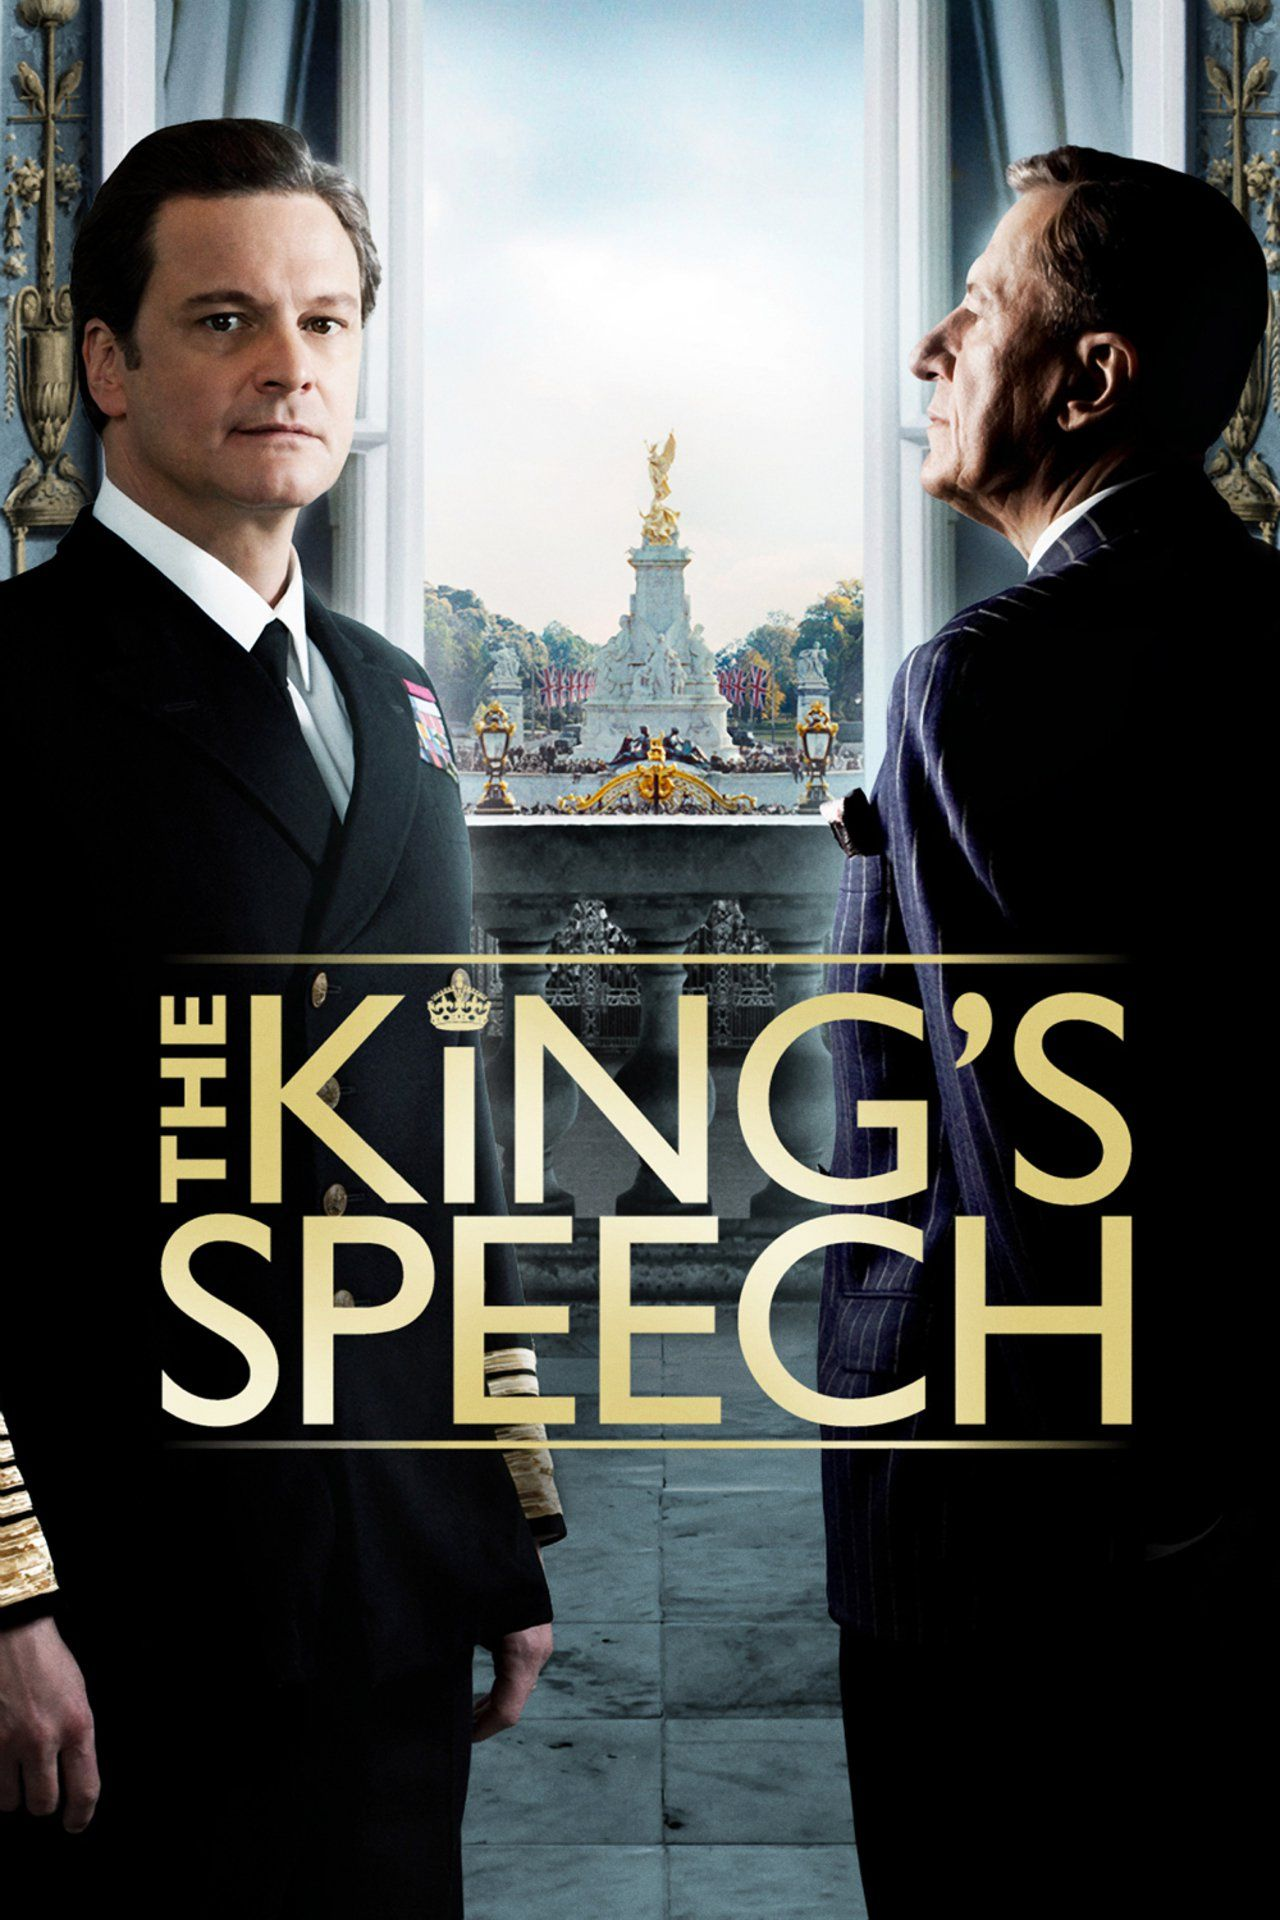 The King Speech2017dvdscrxvidac3 Nydicavi English Subtitles